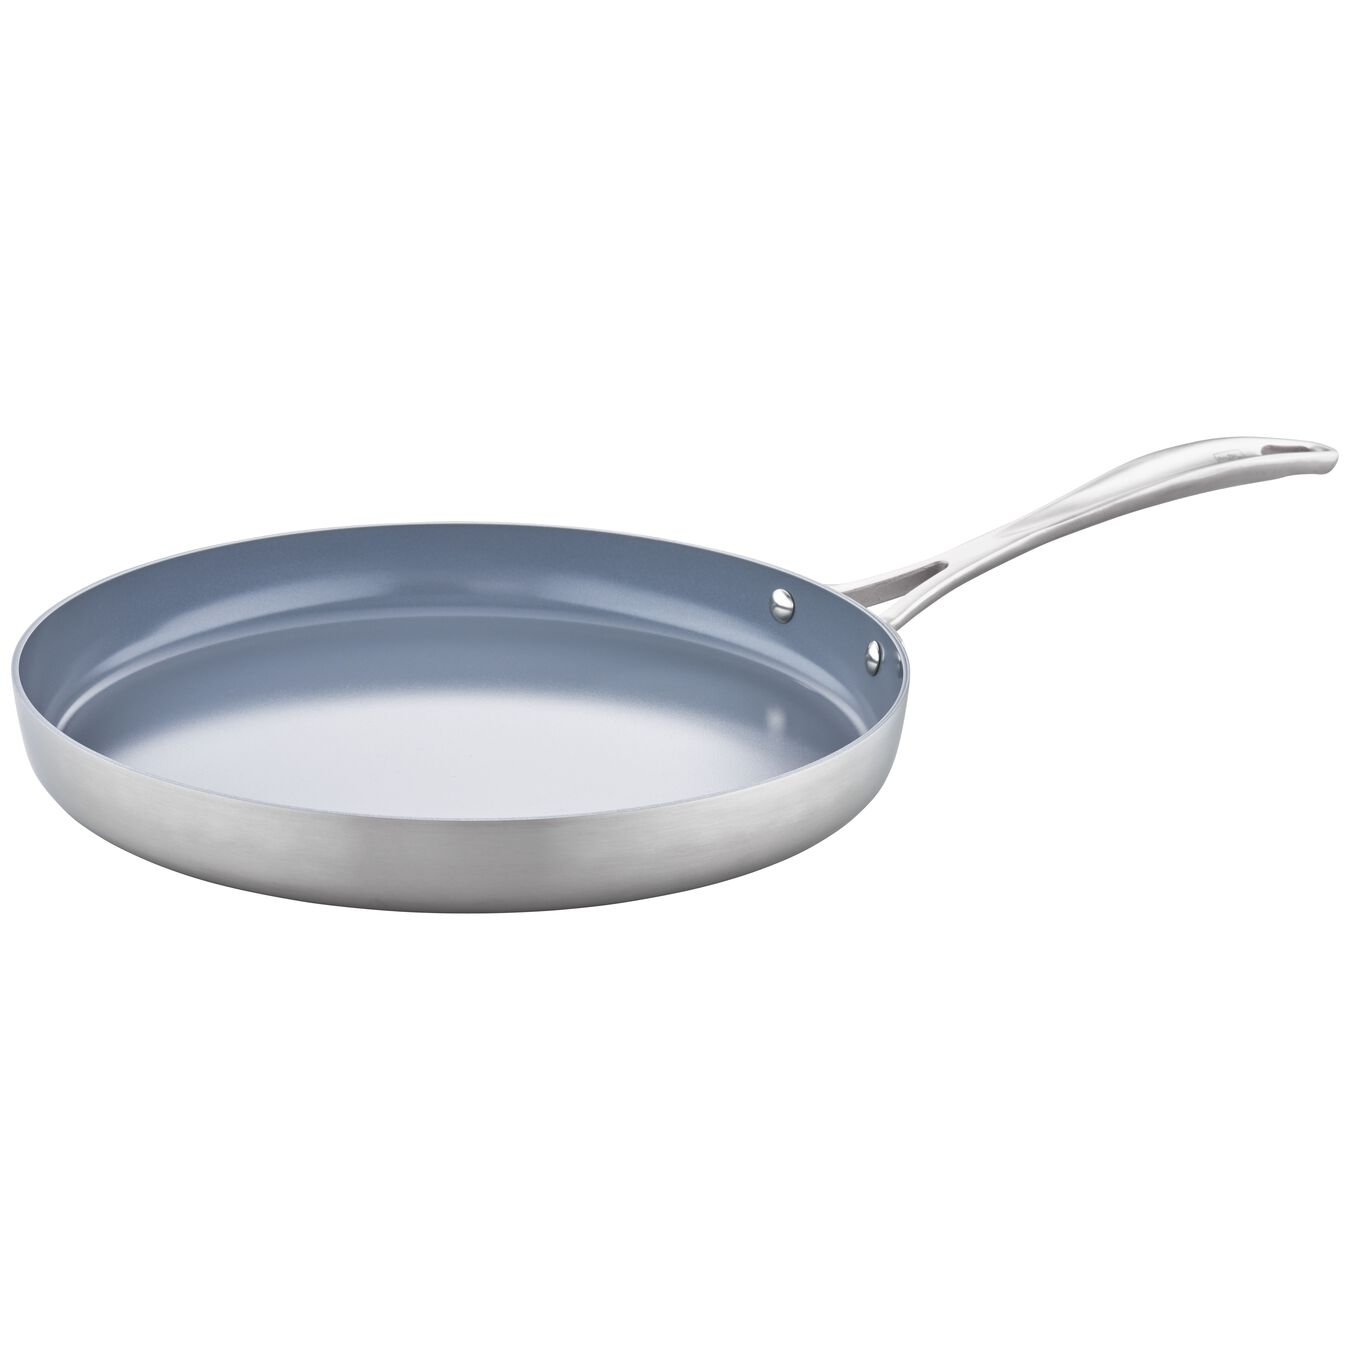 3-ply 12-inch Stainless Steel Ceramic Nonstick Griddle,,large 1